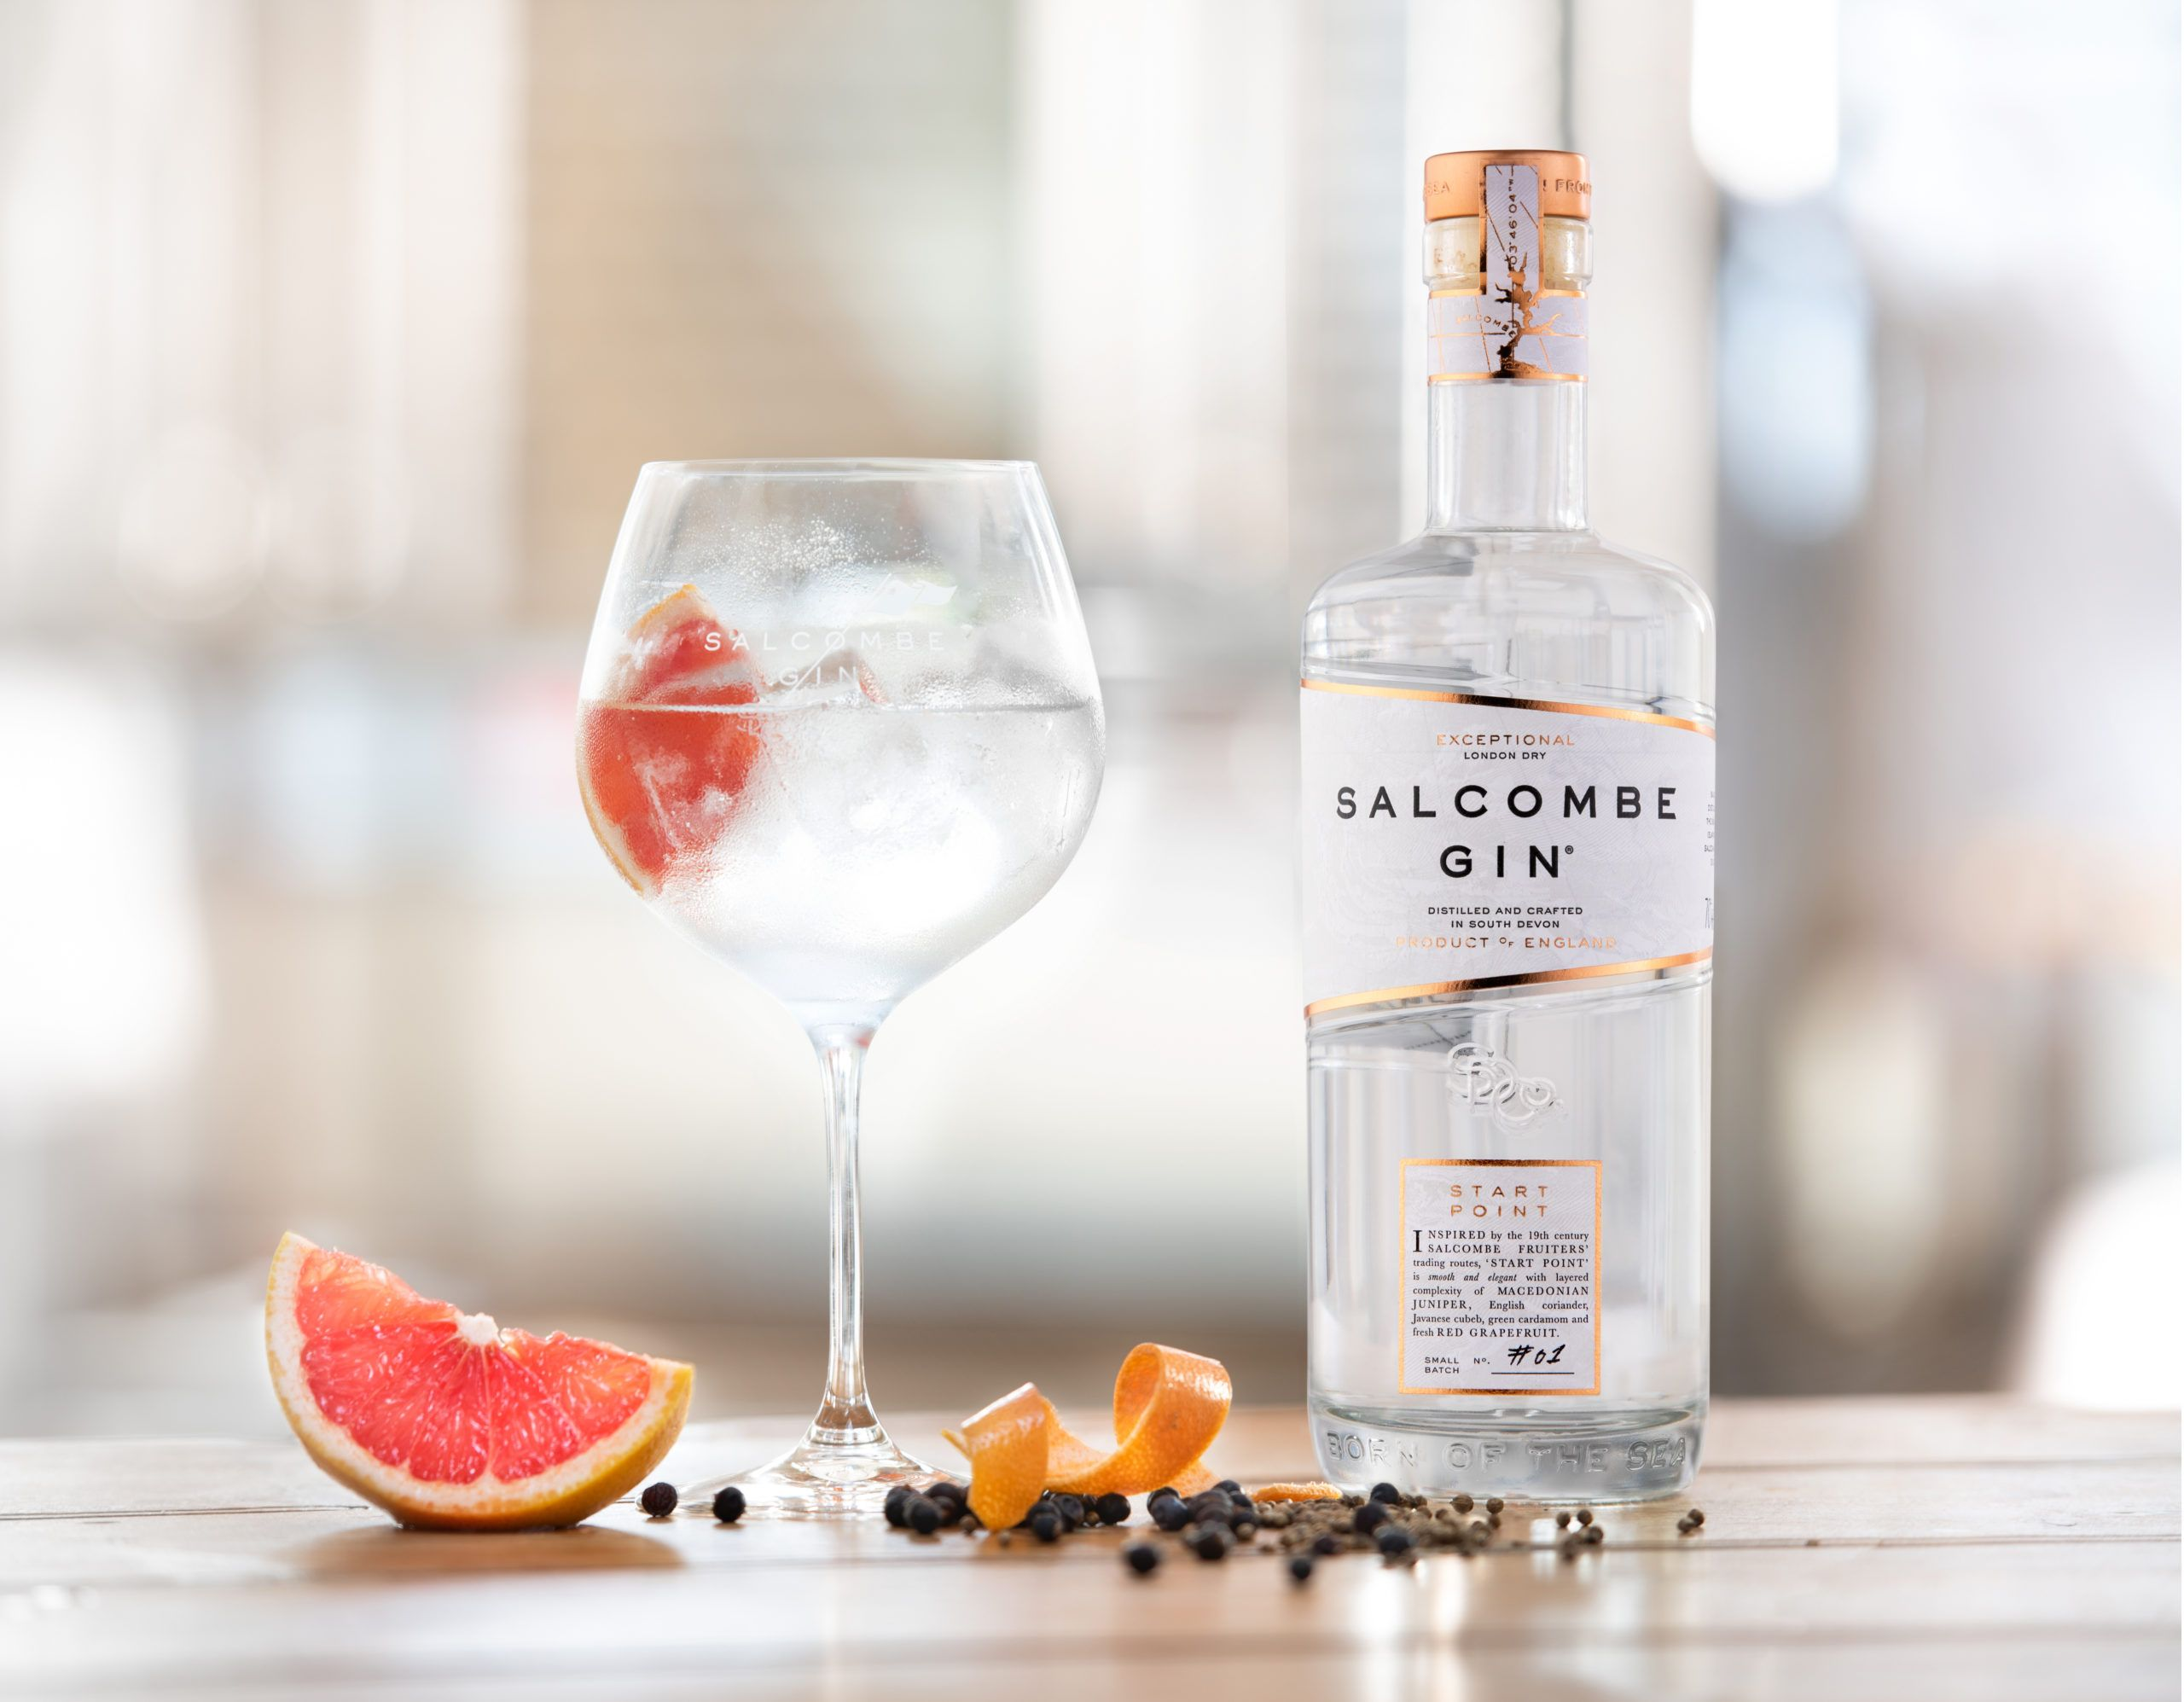 Salcombe Gin 270819 041 Edited Bottle Closer To Glass